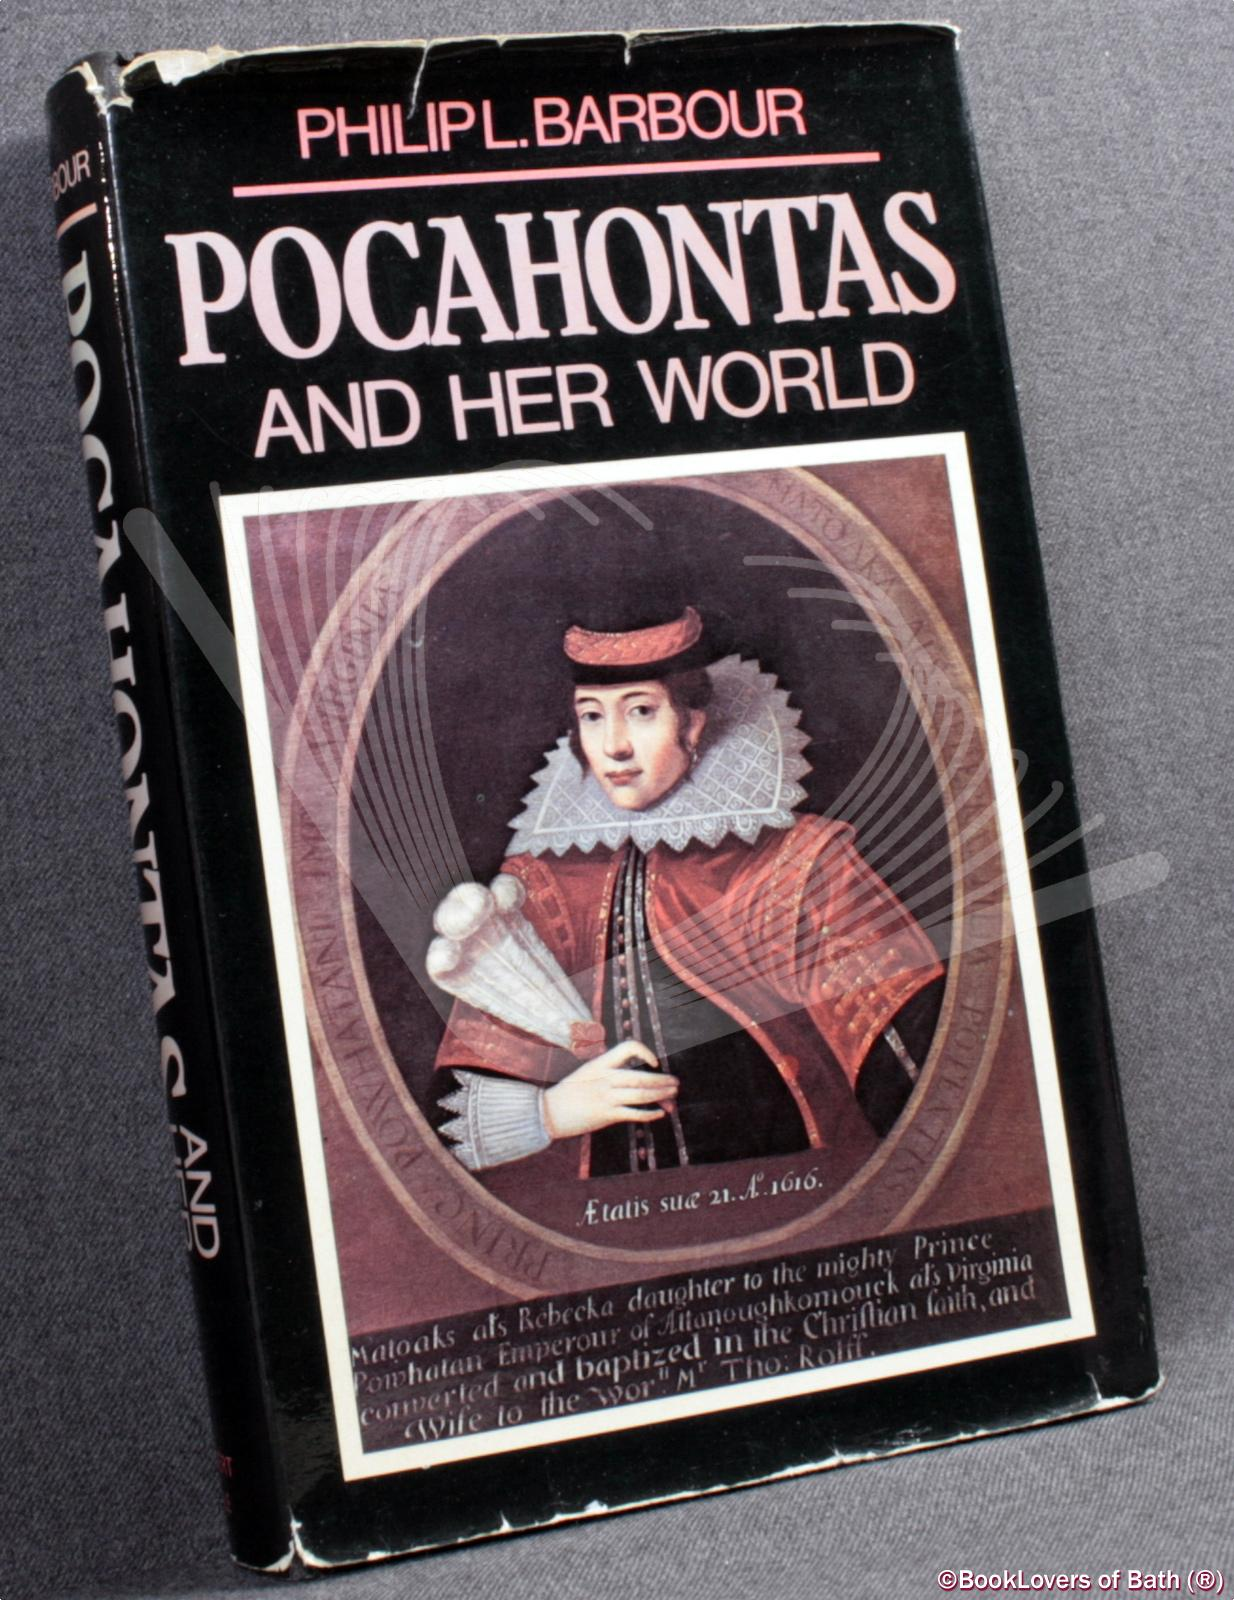 Pocahontas and Her World: A Chronicle of America's First Settlement in Which Is Related the Story of the Indians and the Englishmen - Particularly Captain John Smith, Captain Samuel Argall, and Master John Rolfe - Philip L. Barbour